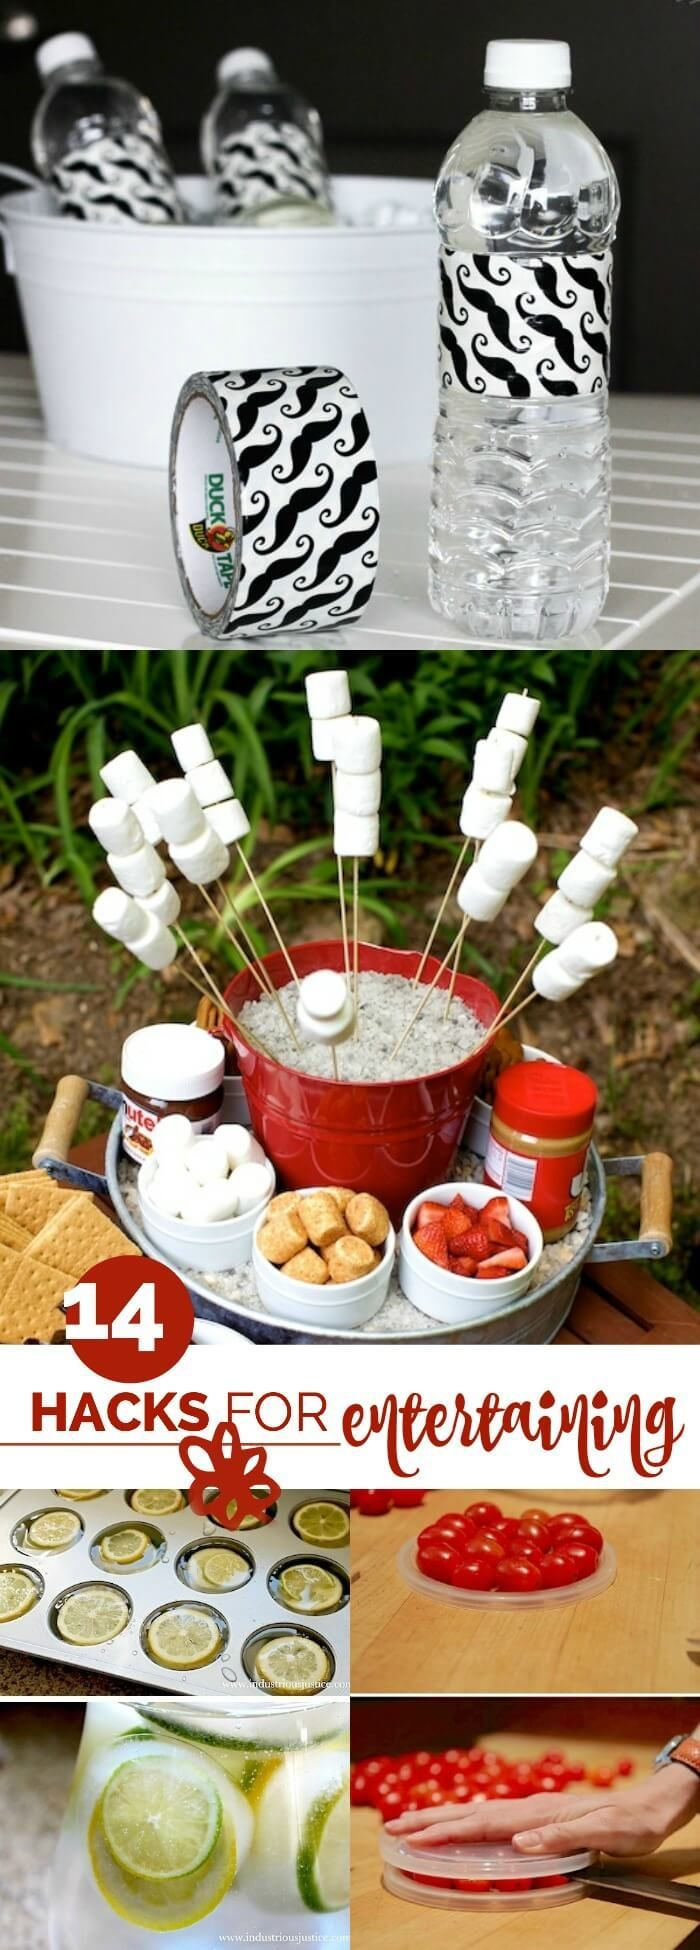 14 Fun and Creative Entertaining Hacks for your upcoming parties!